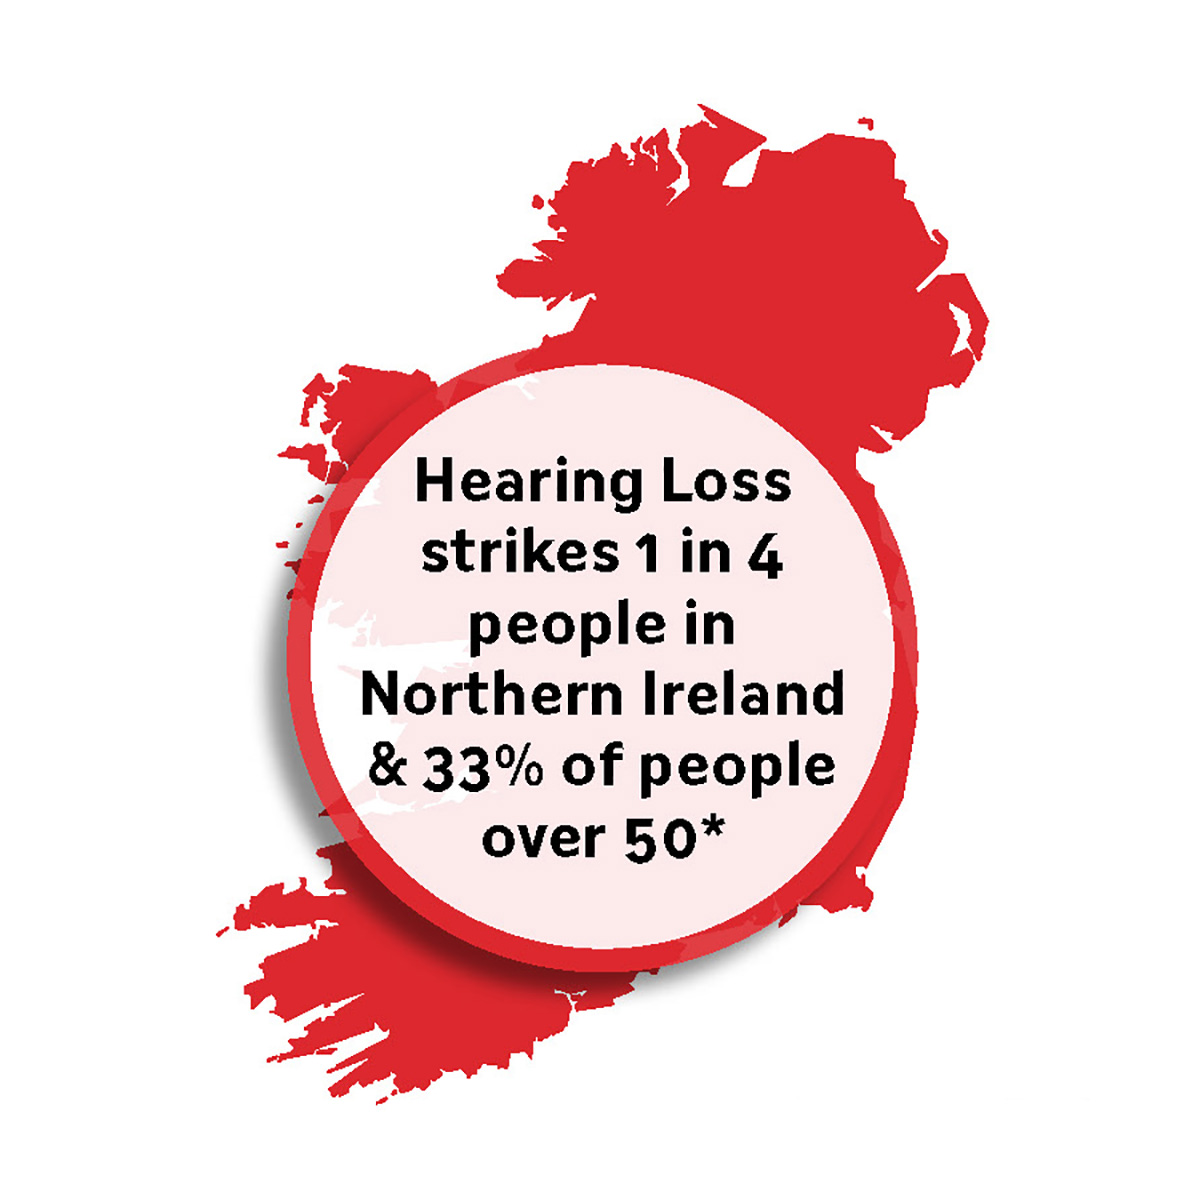 Hearing loss statistics in Nothern Ireland